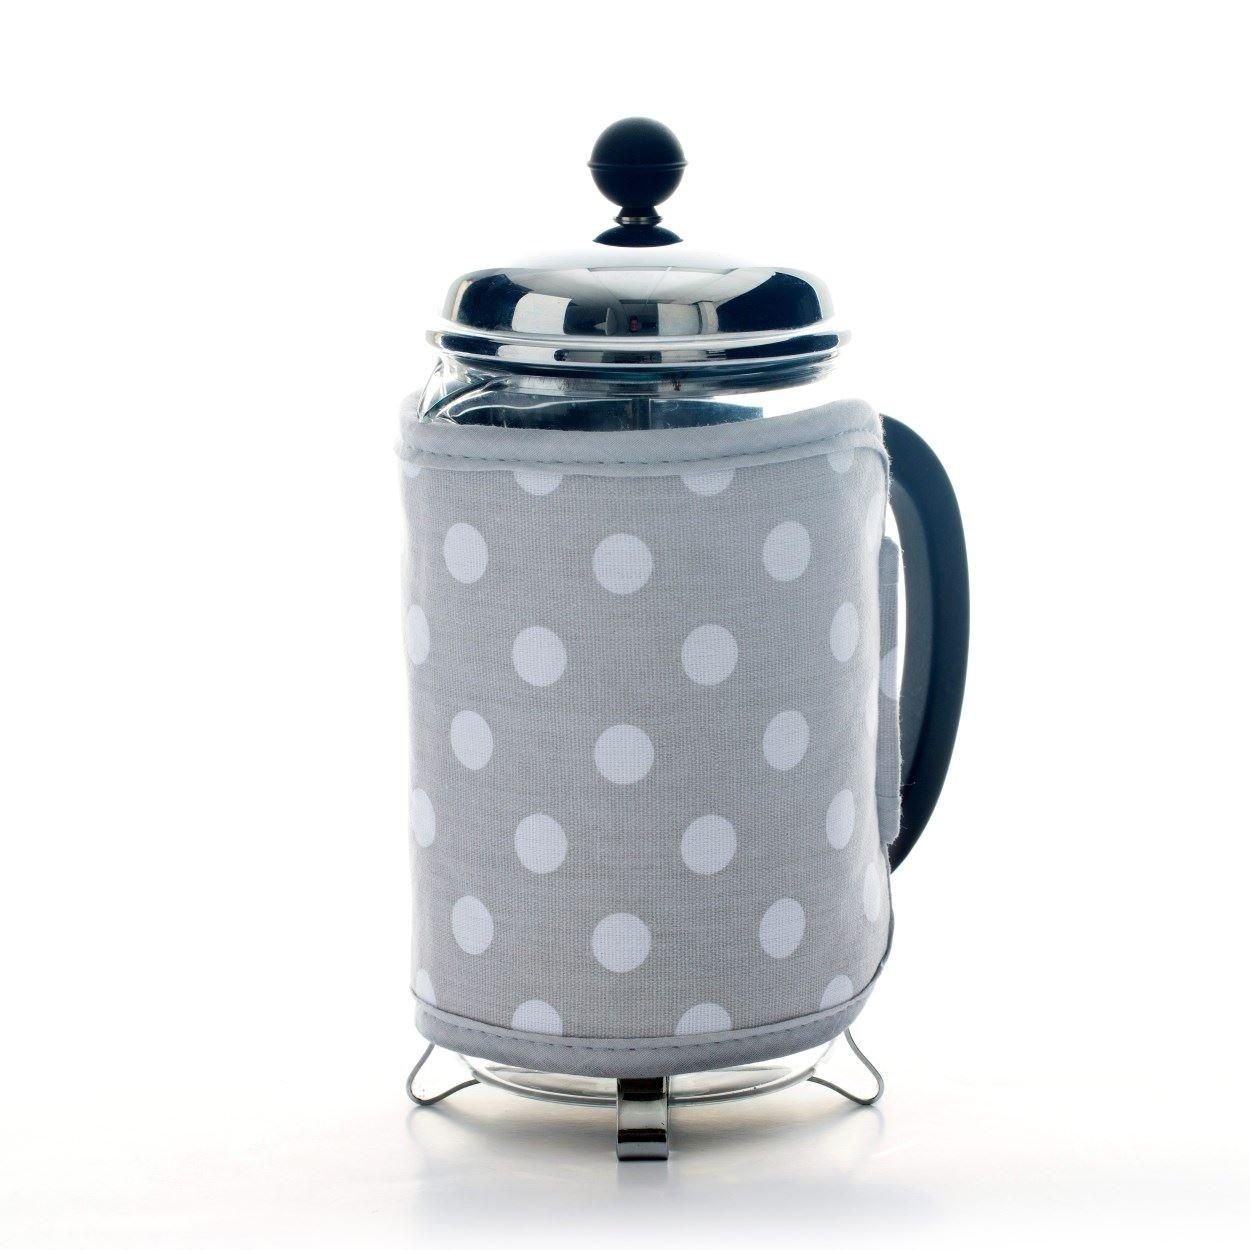 Dexam Flamenco Cafetiere Cosy, Dove Grey - 16150210